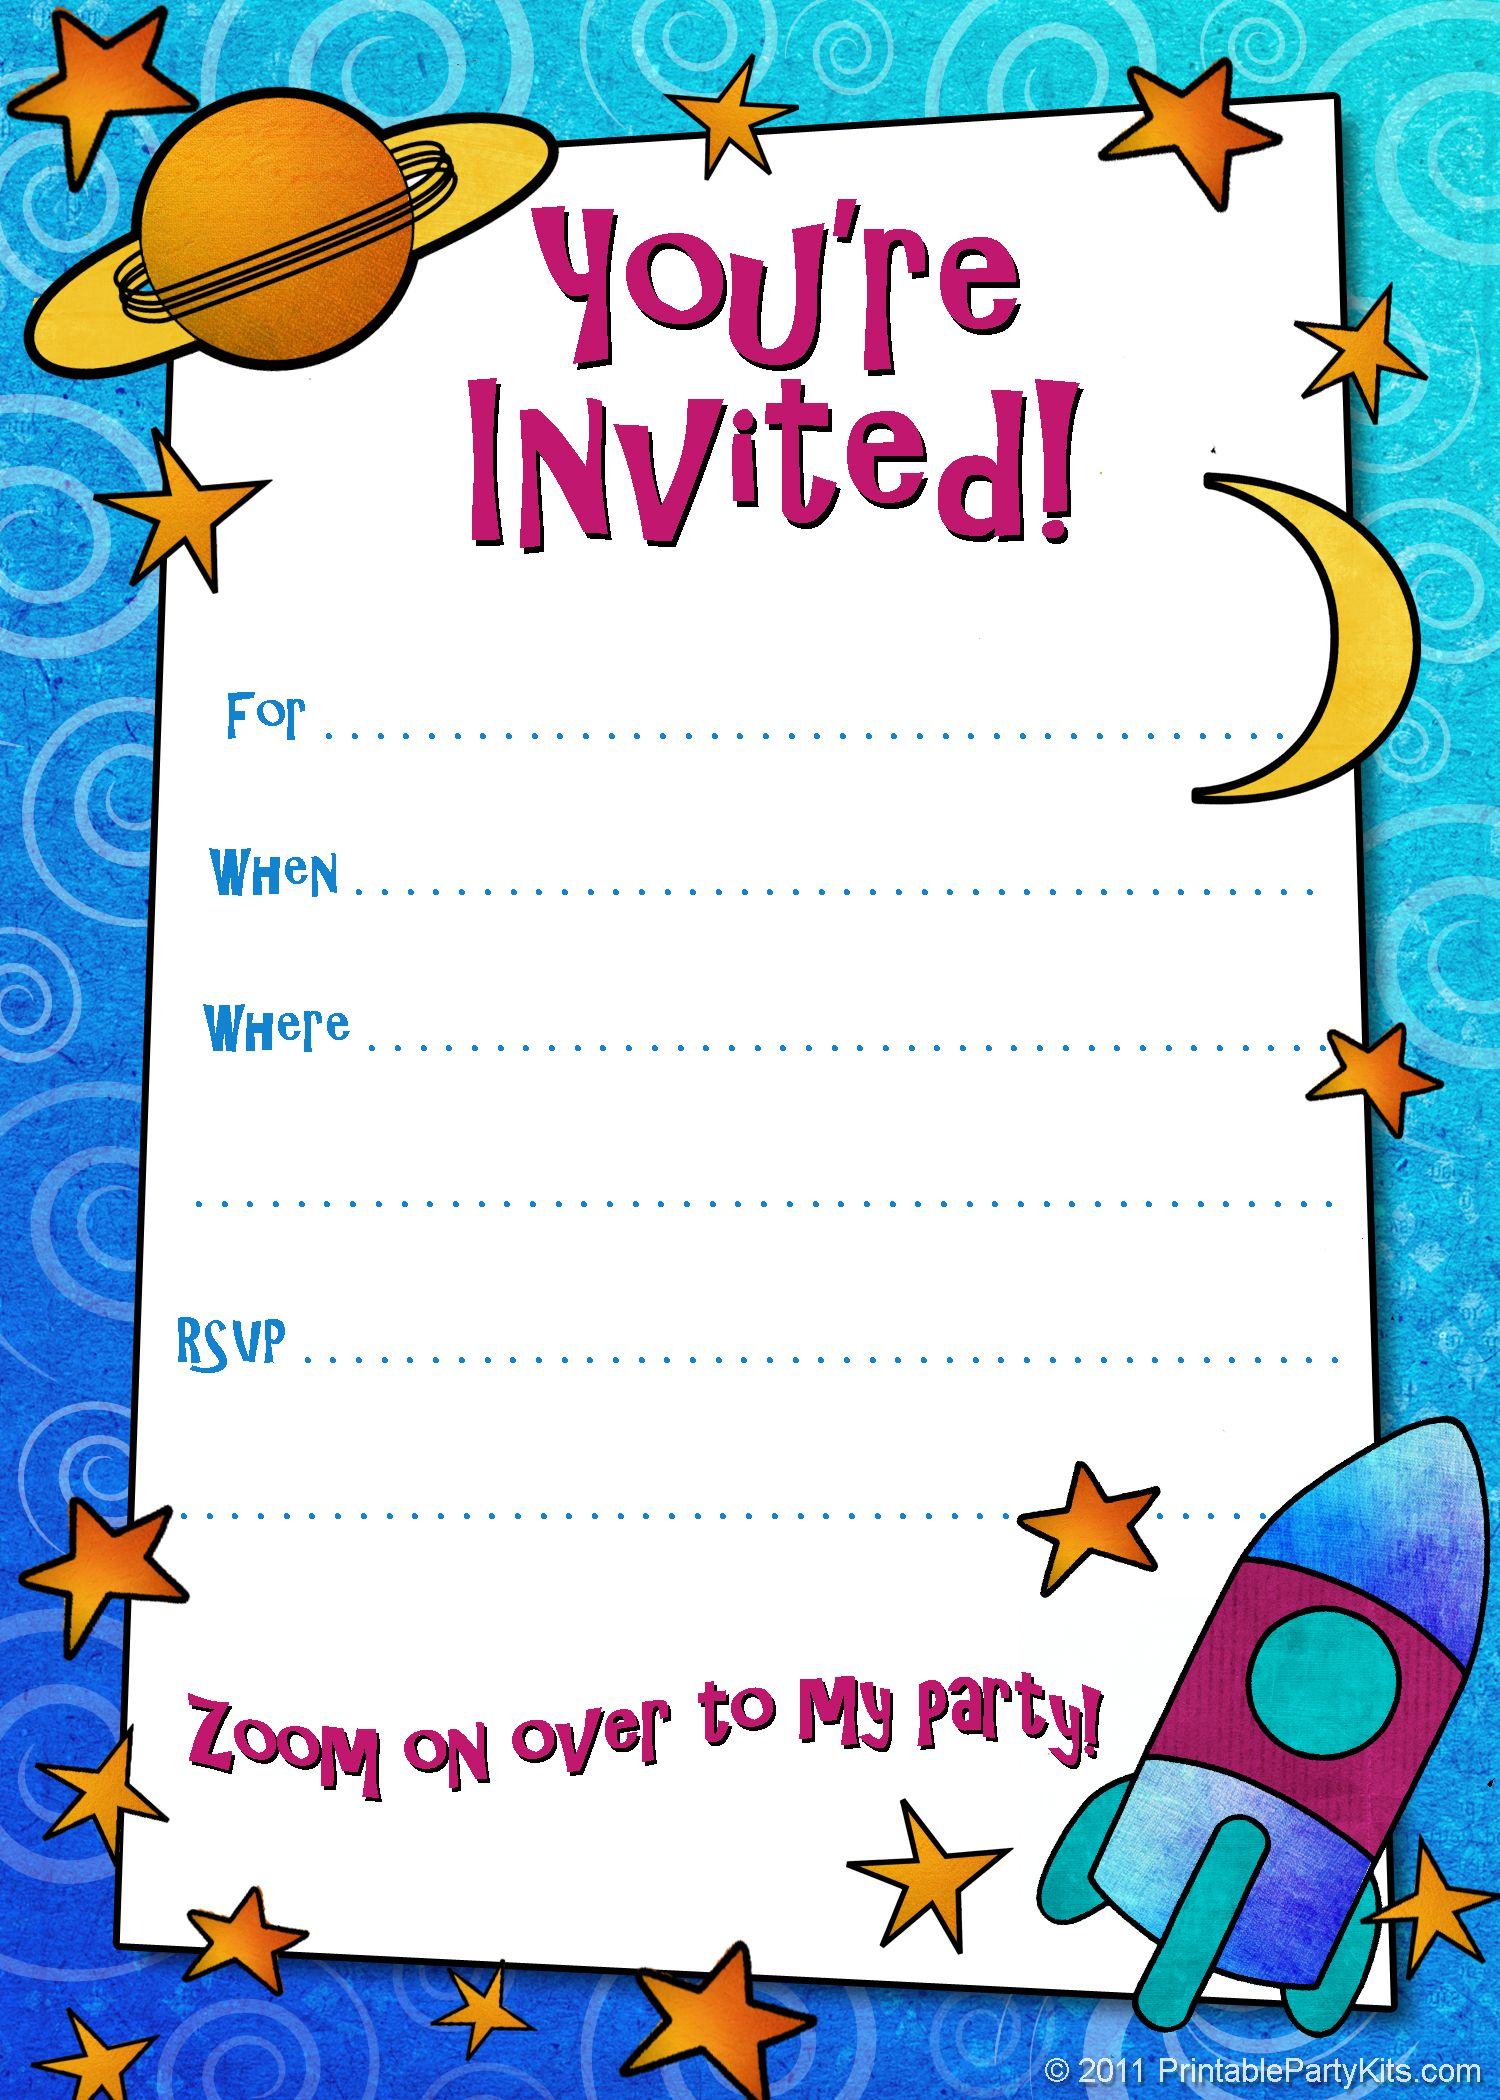 Free printable boys birthday party invitations boy birthday these printable free boys party invites can be made easily at home they come in a variety of themes including cars spaceships frogs barnyard animals bookmarktalkfo Gallery